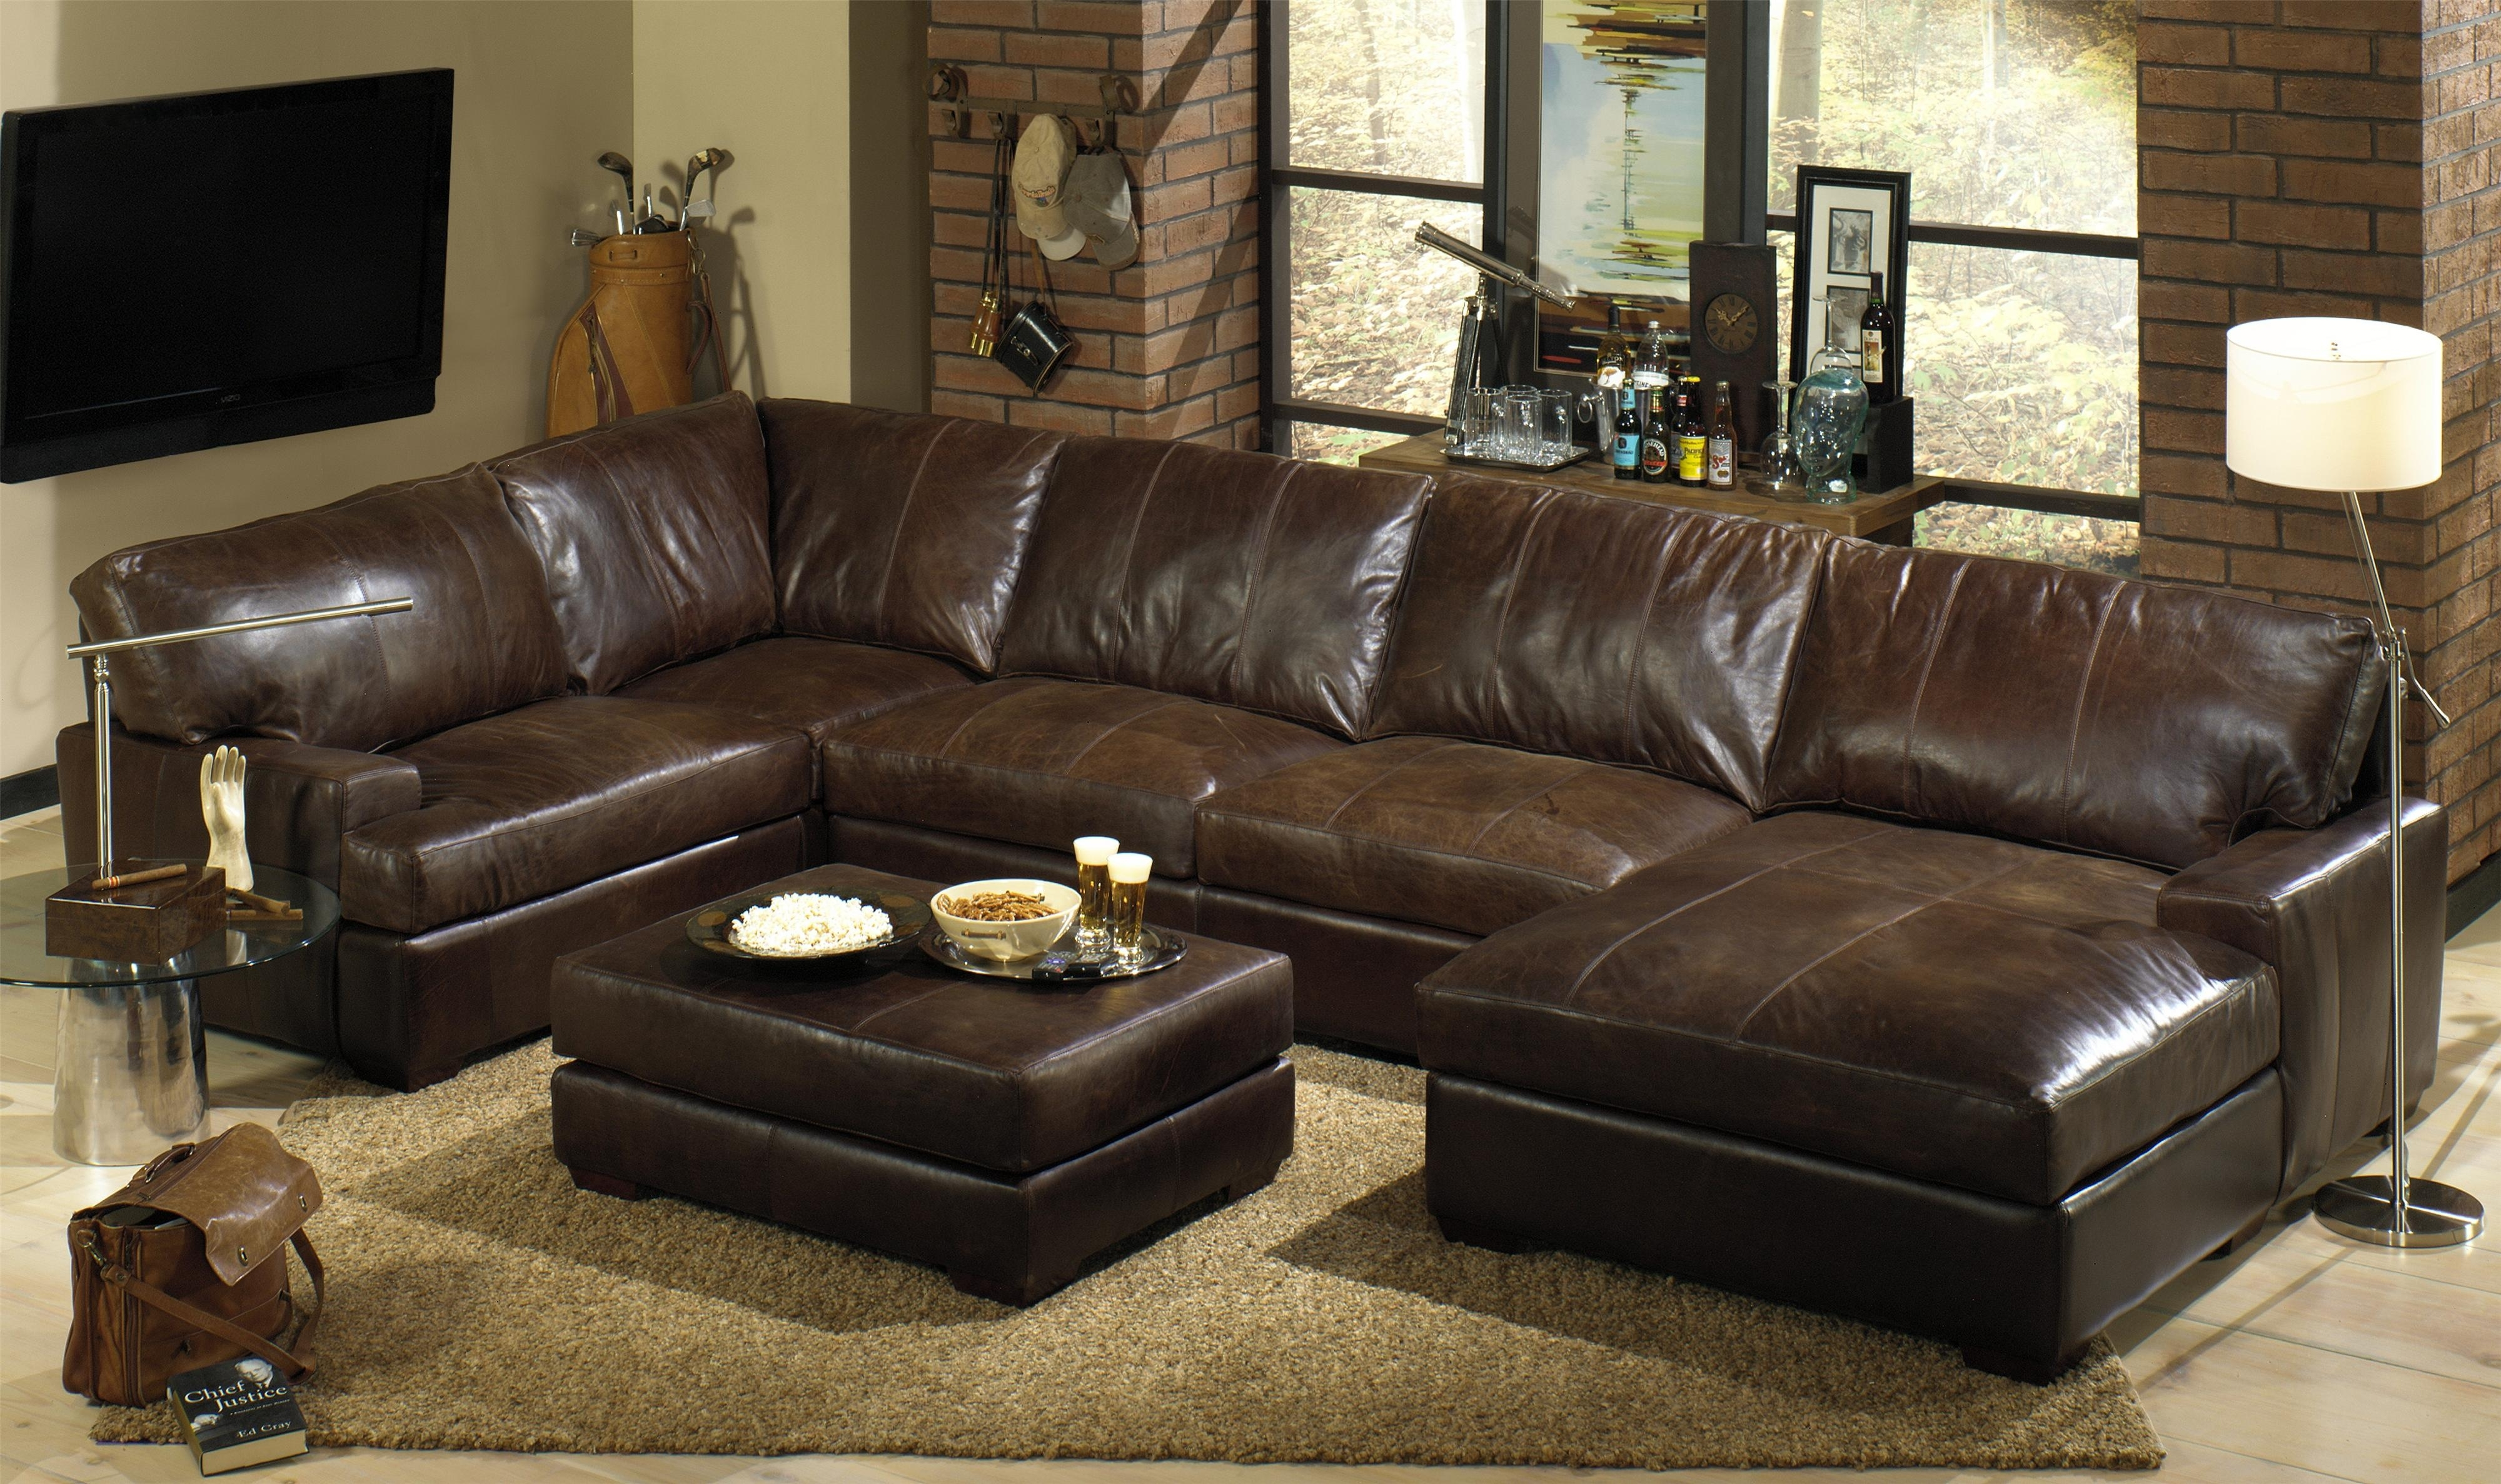 Elegant Sectional Sofa With Recliner And Chaise Lounge 89 For Your Inside Phoenix Sectional Sofas (Photo 8 of 10)